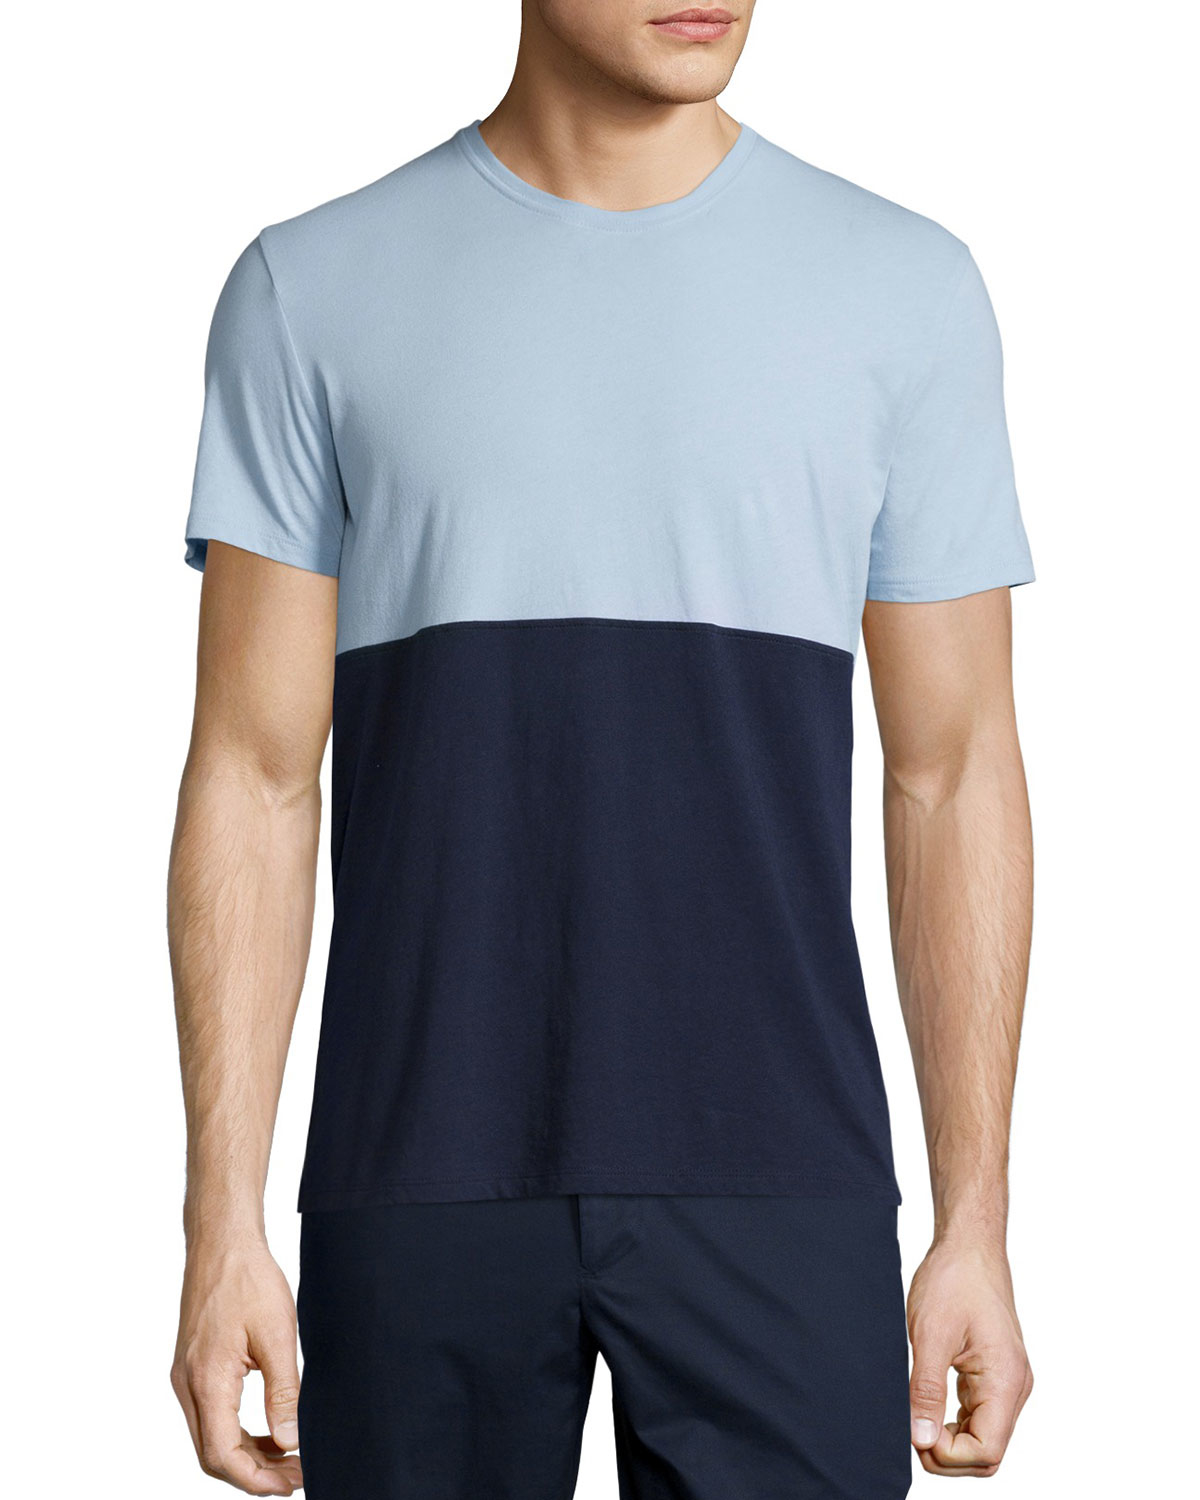 atm colorblock short sleeve jersey t shirt in blue for men